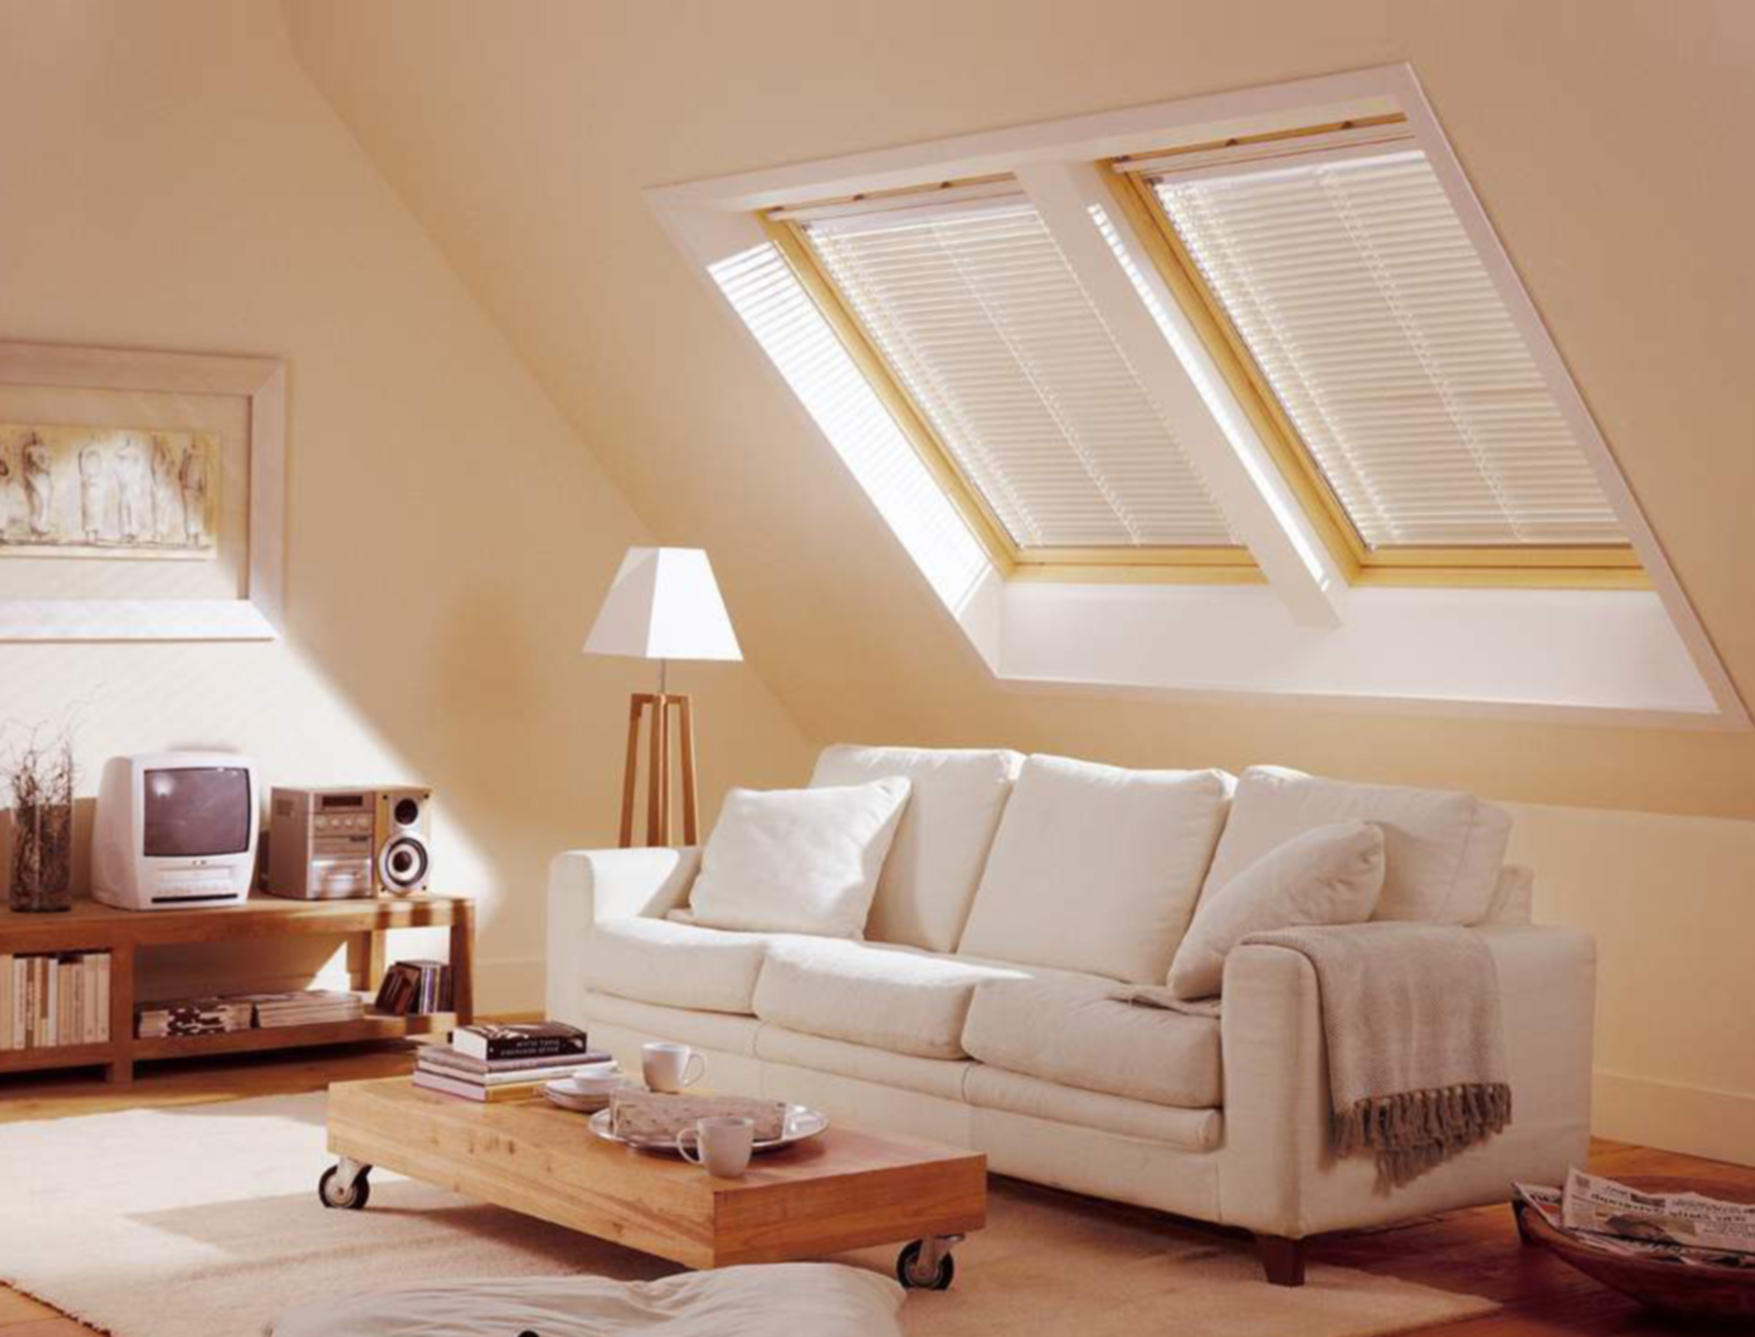 How to add light in your attic for Attic decoration